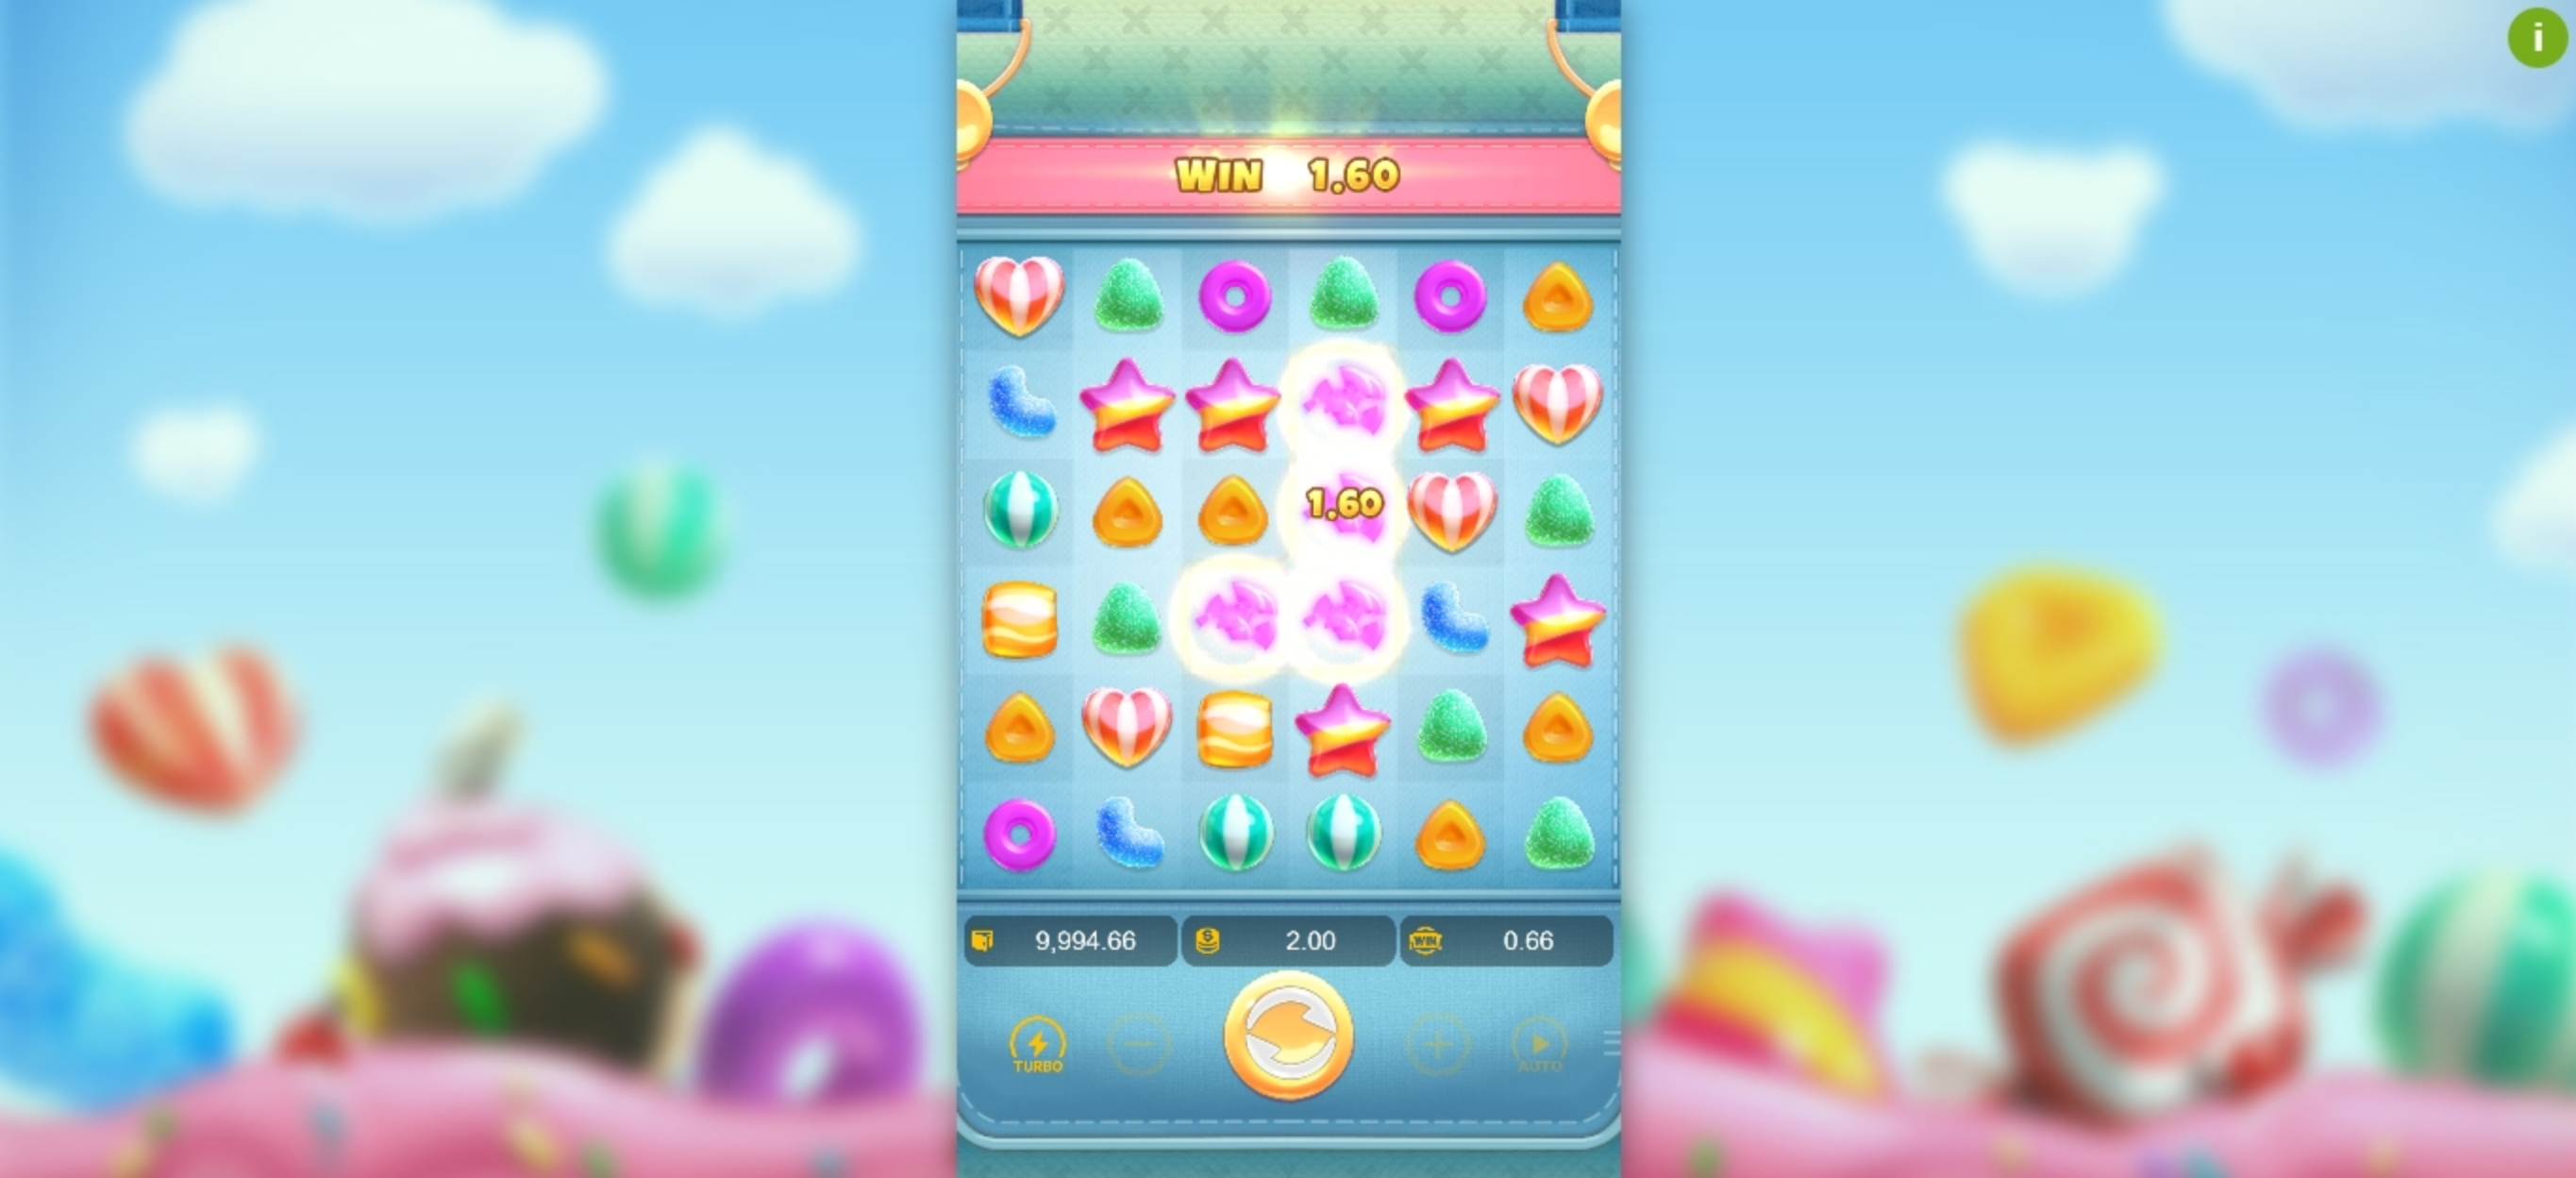 Win Money in Candy Burst (PG Soft) Free Slot Game by PG Soft